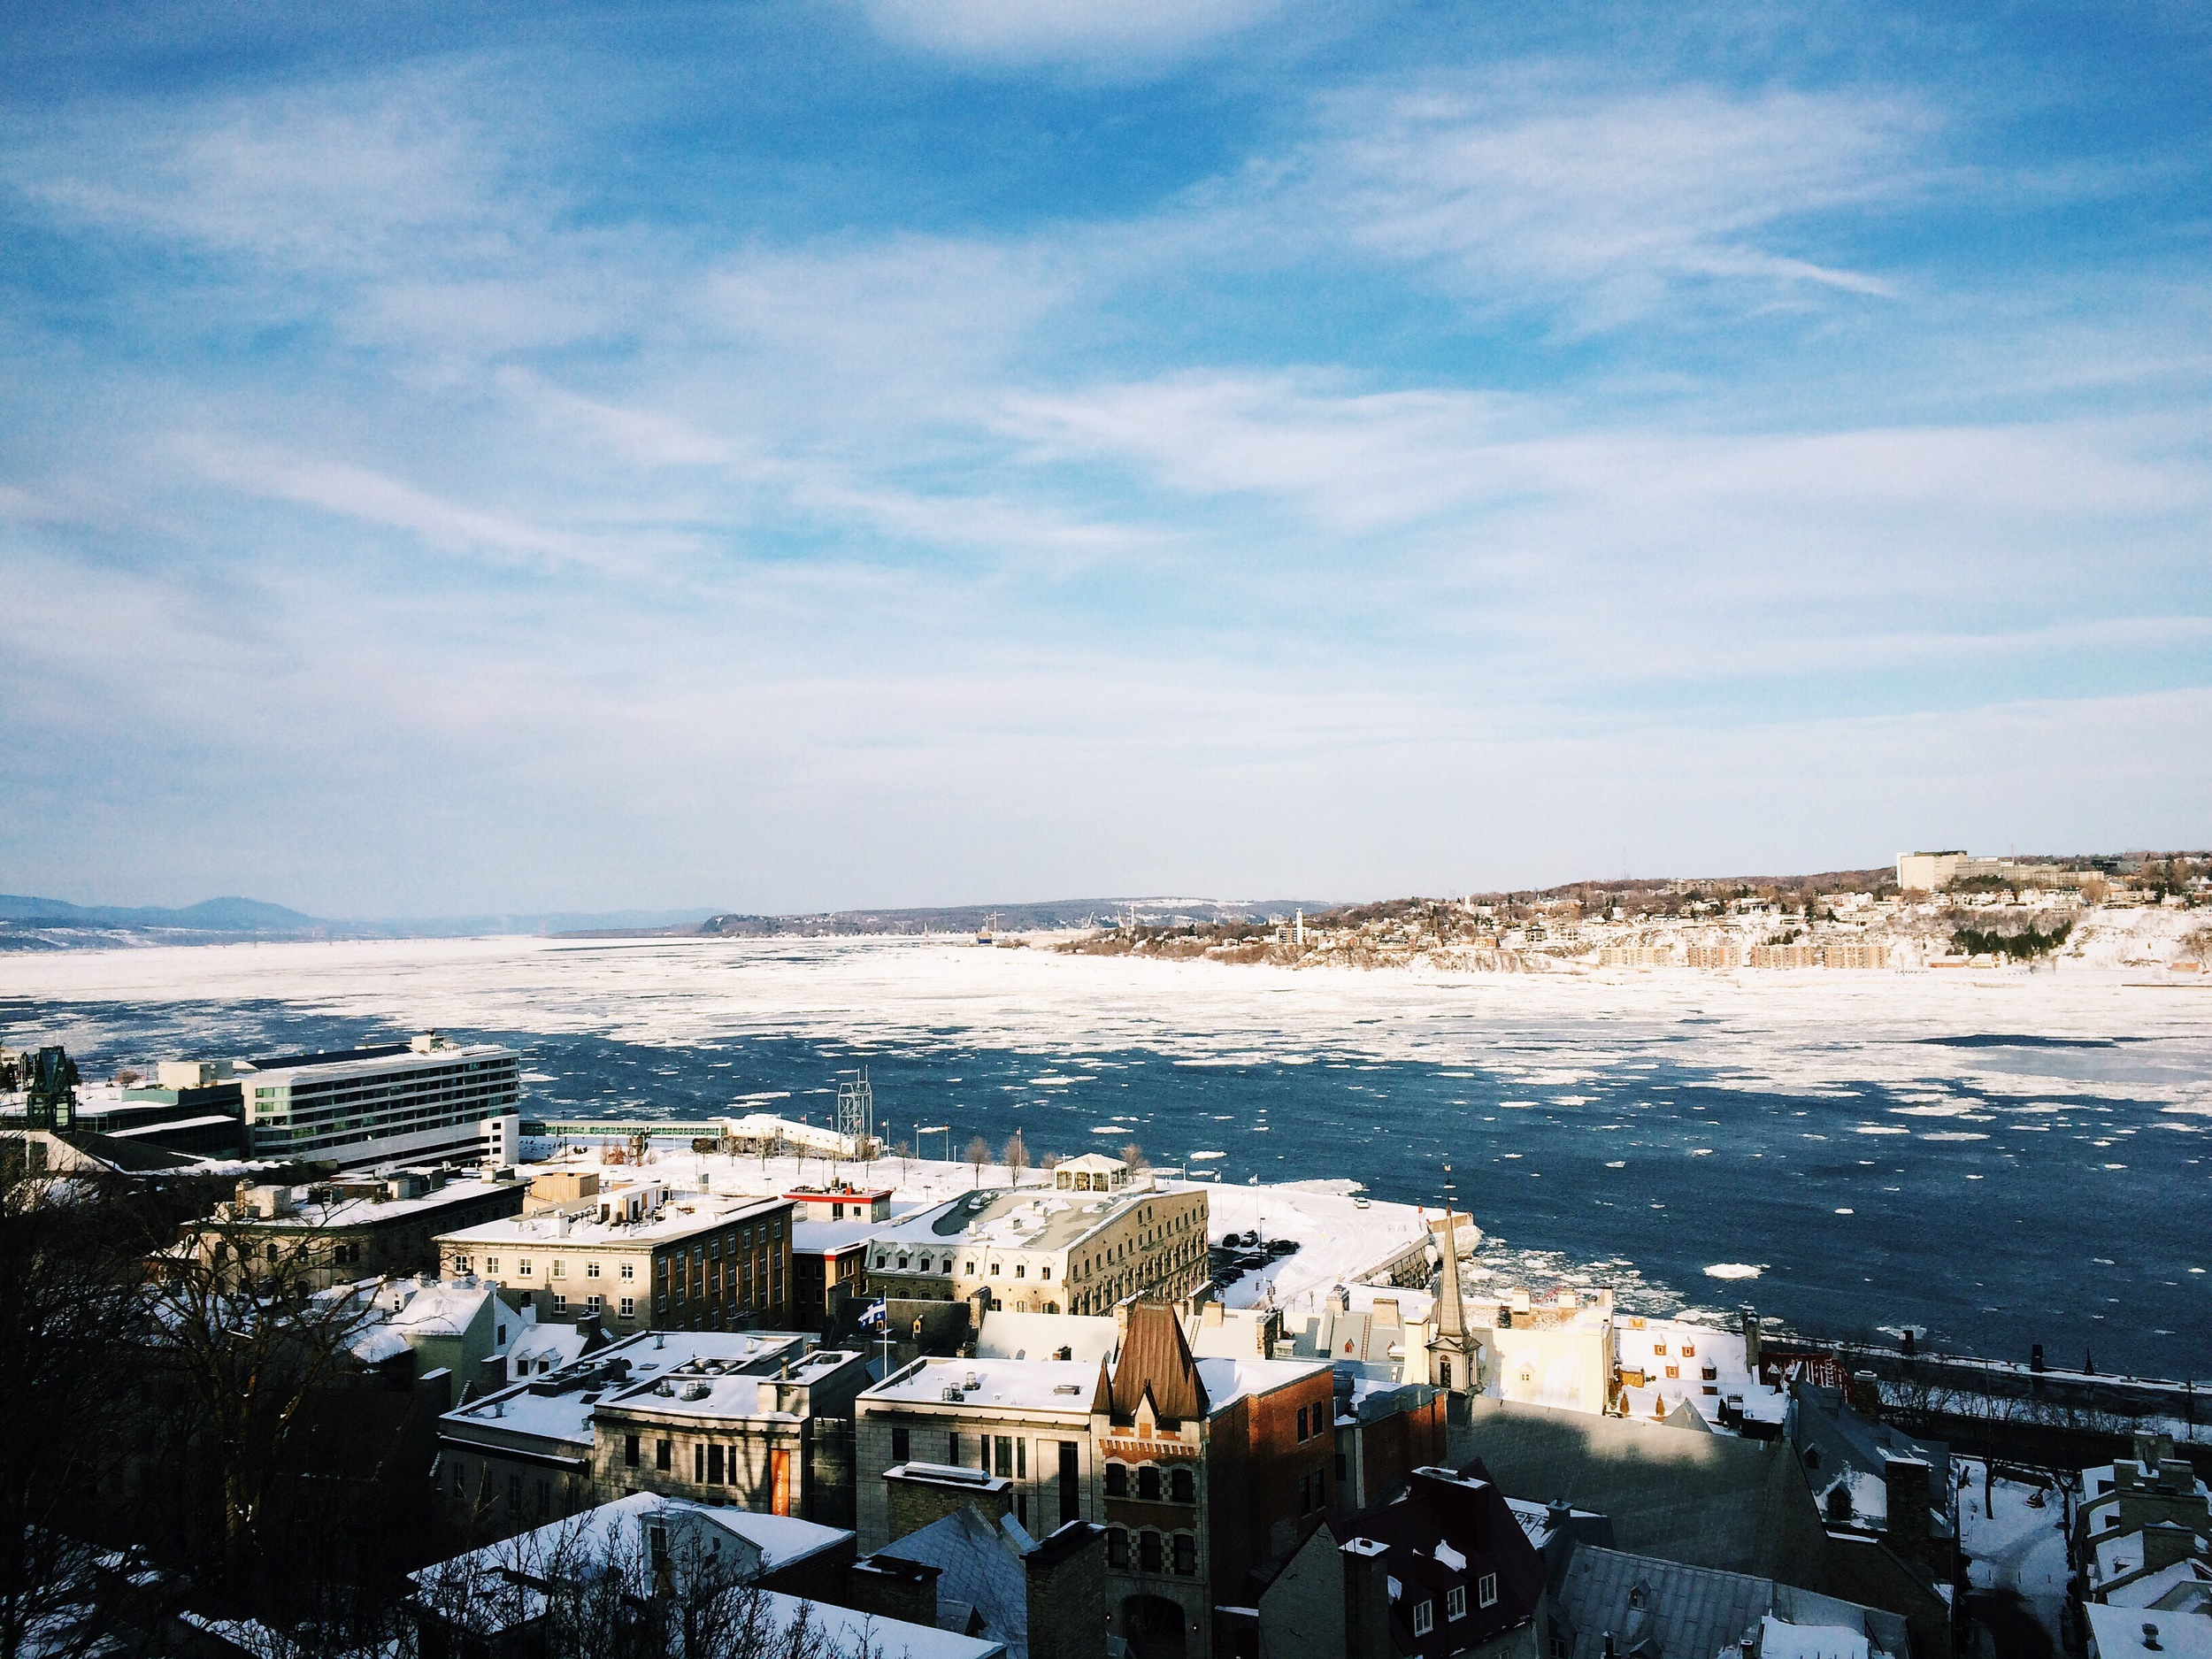 The river across Quebec city looked like a breakaway glacier run with large chucks of ice floating on it even in late March!